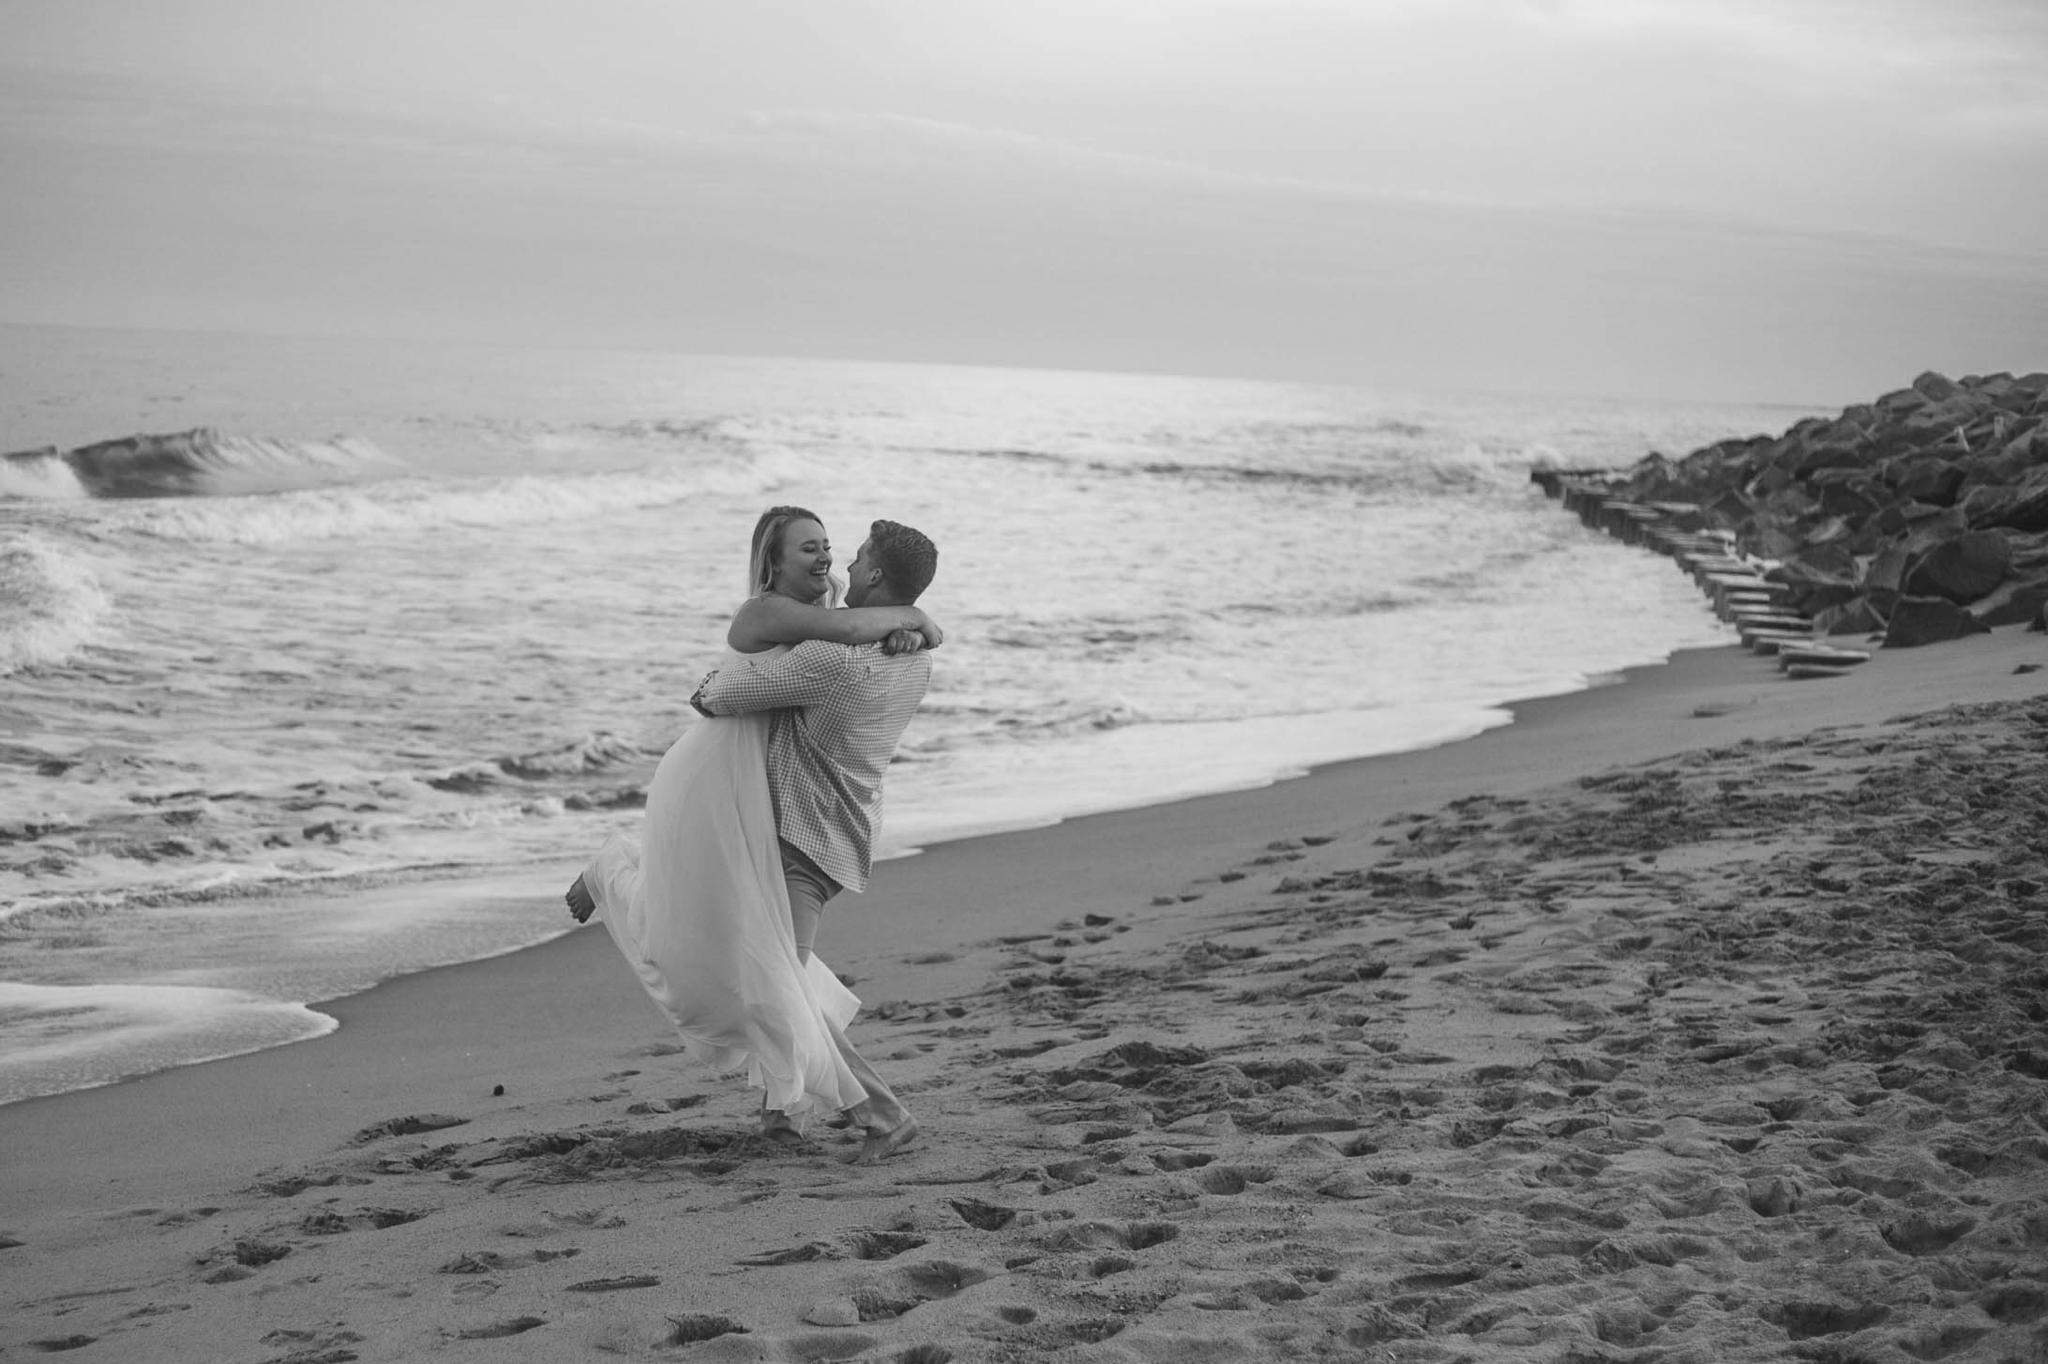 Black and White Romantic Engagement Photography Session at the beach during sunset - guy is kissing his fiance - girl is wearing a white flowy maxi dress from lulus - Honolulu Oahu Hawaii Wedding Photographer - Johanna Dye